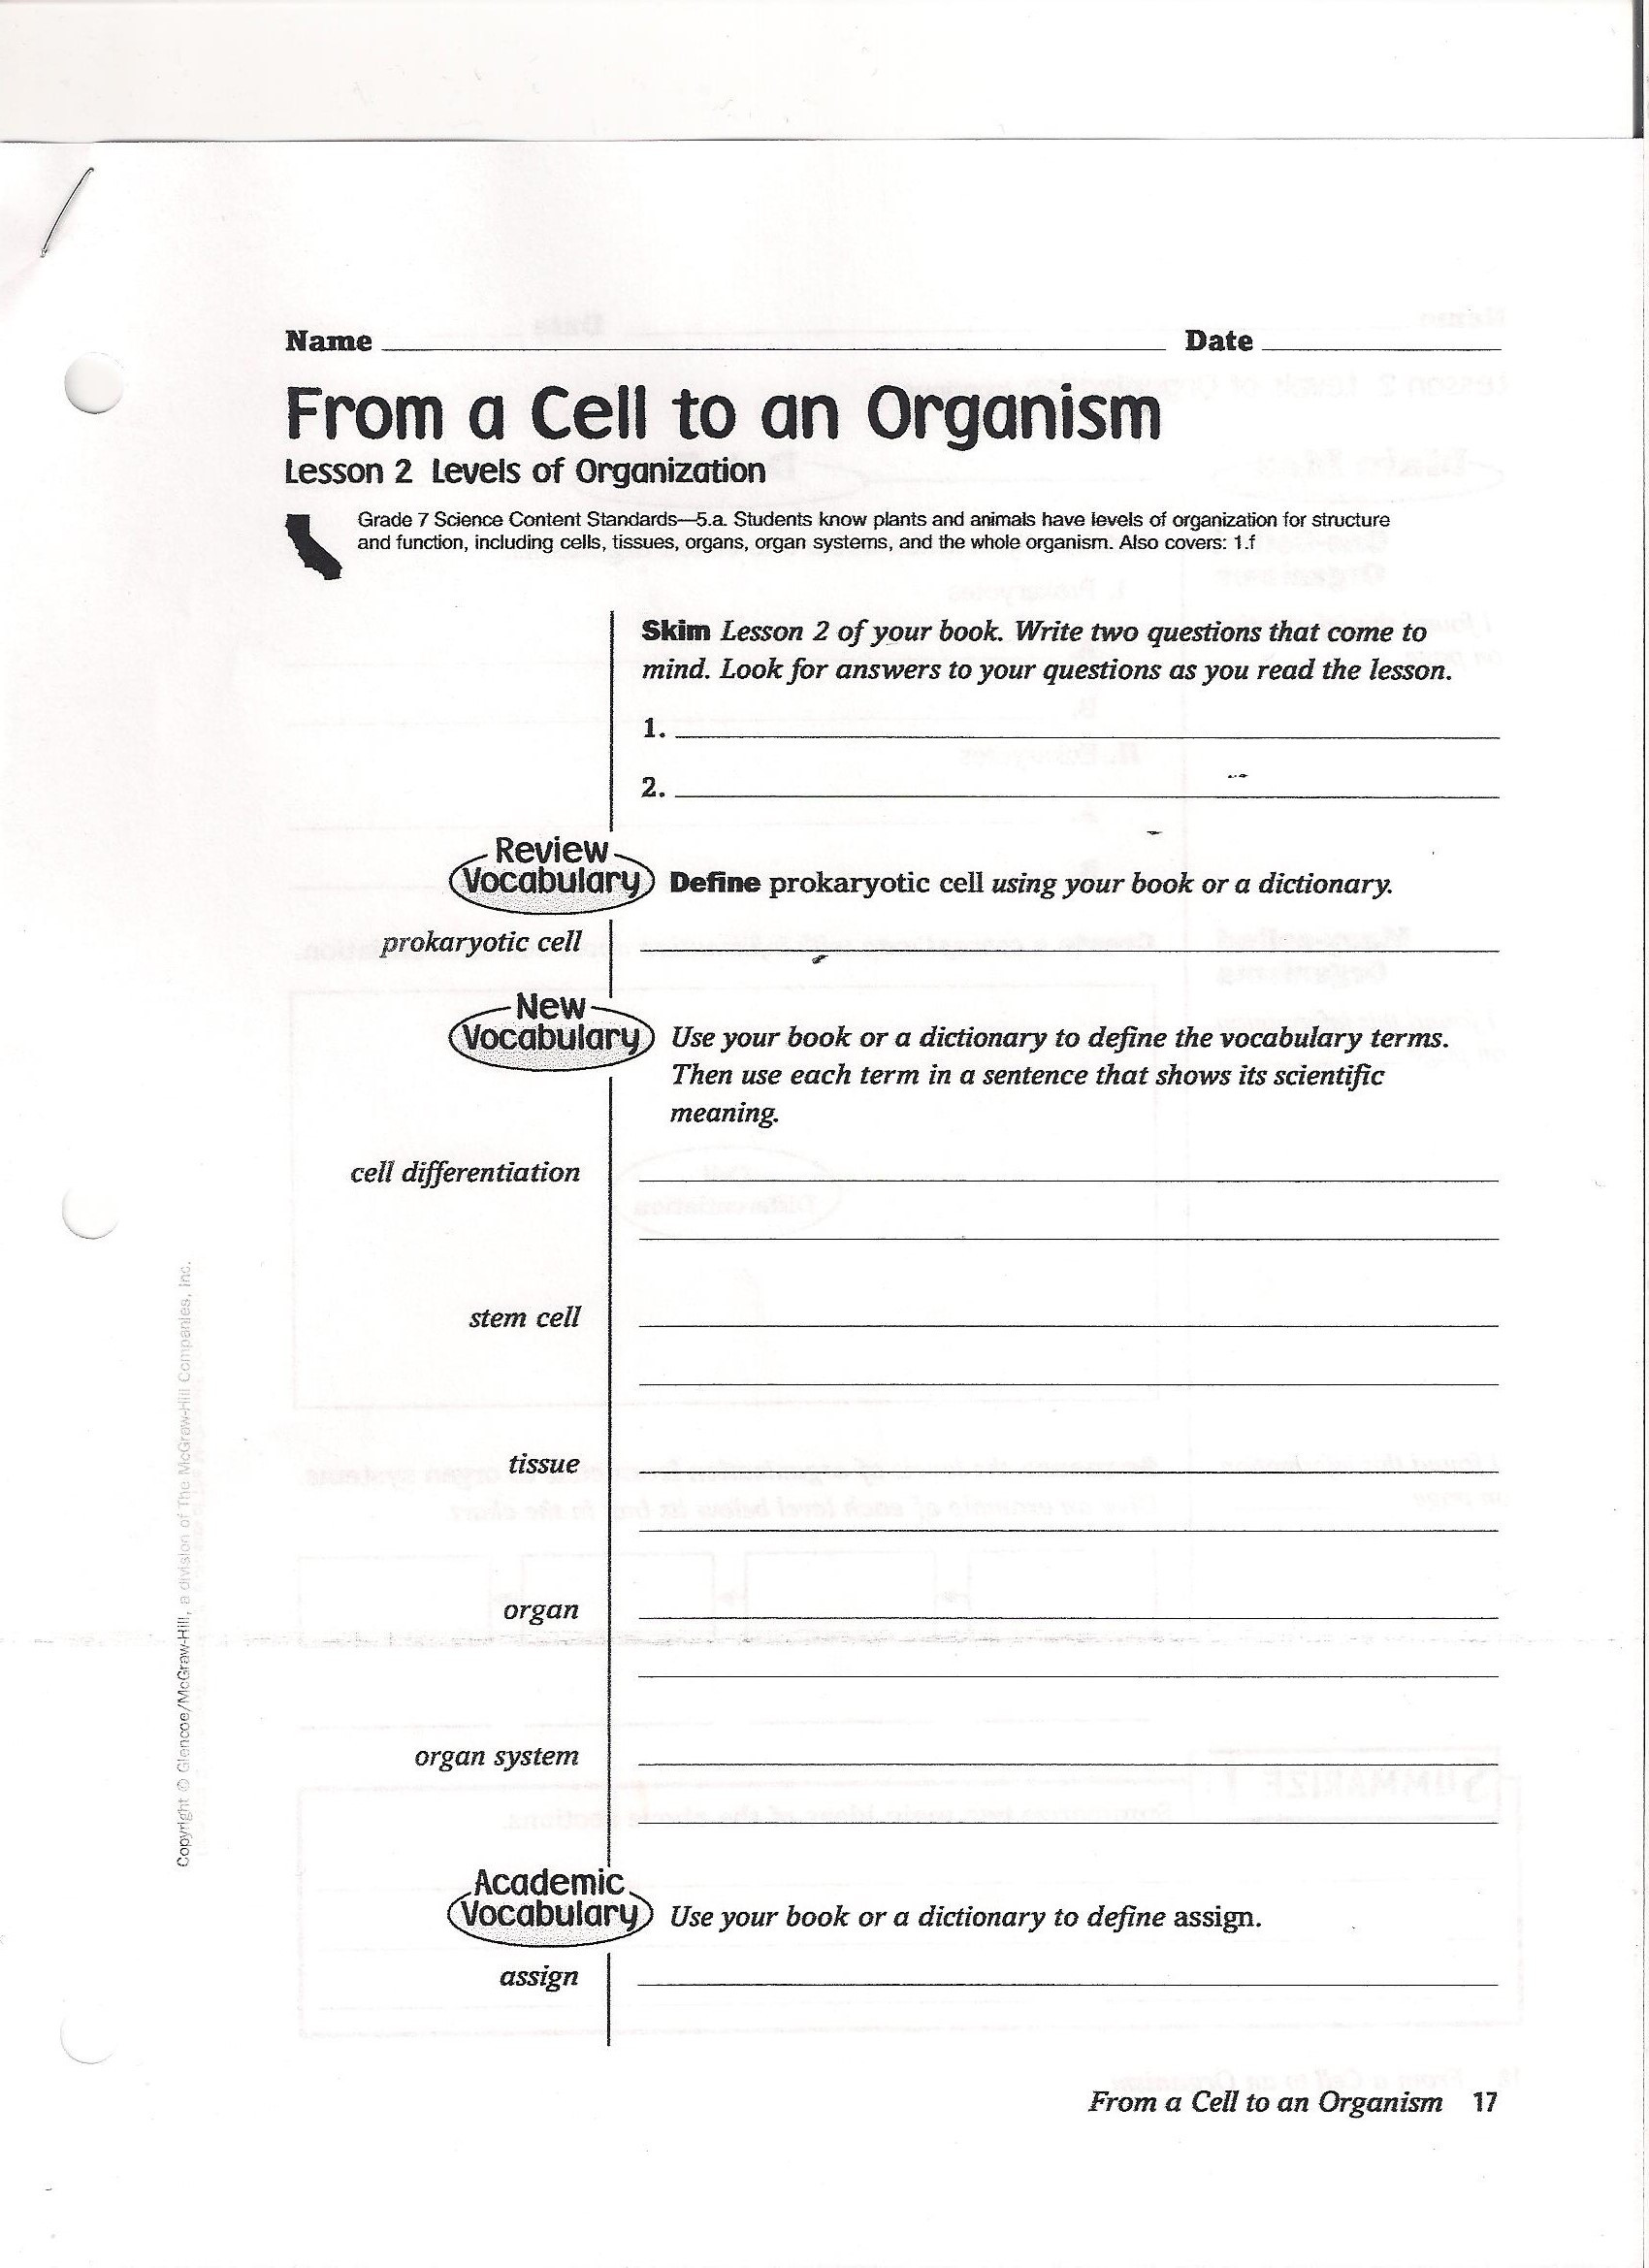 Science Worksheets for 7th Grade Unique is Life Science Worksheet Educational 7th Grade Cell